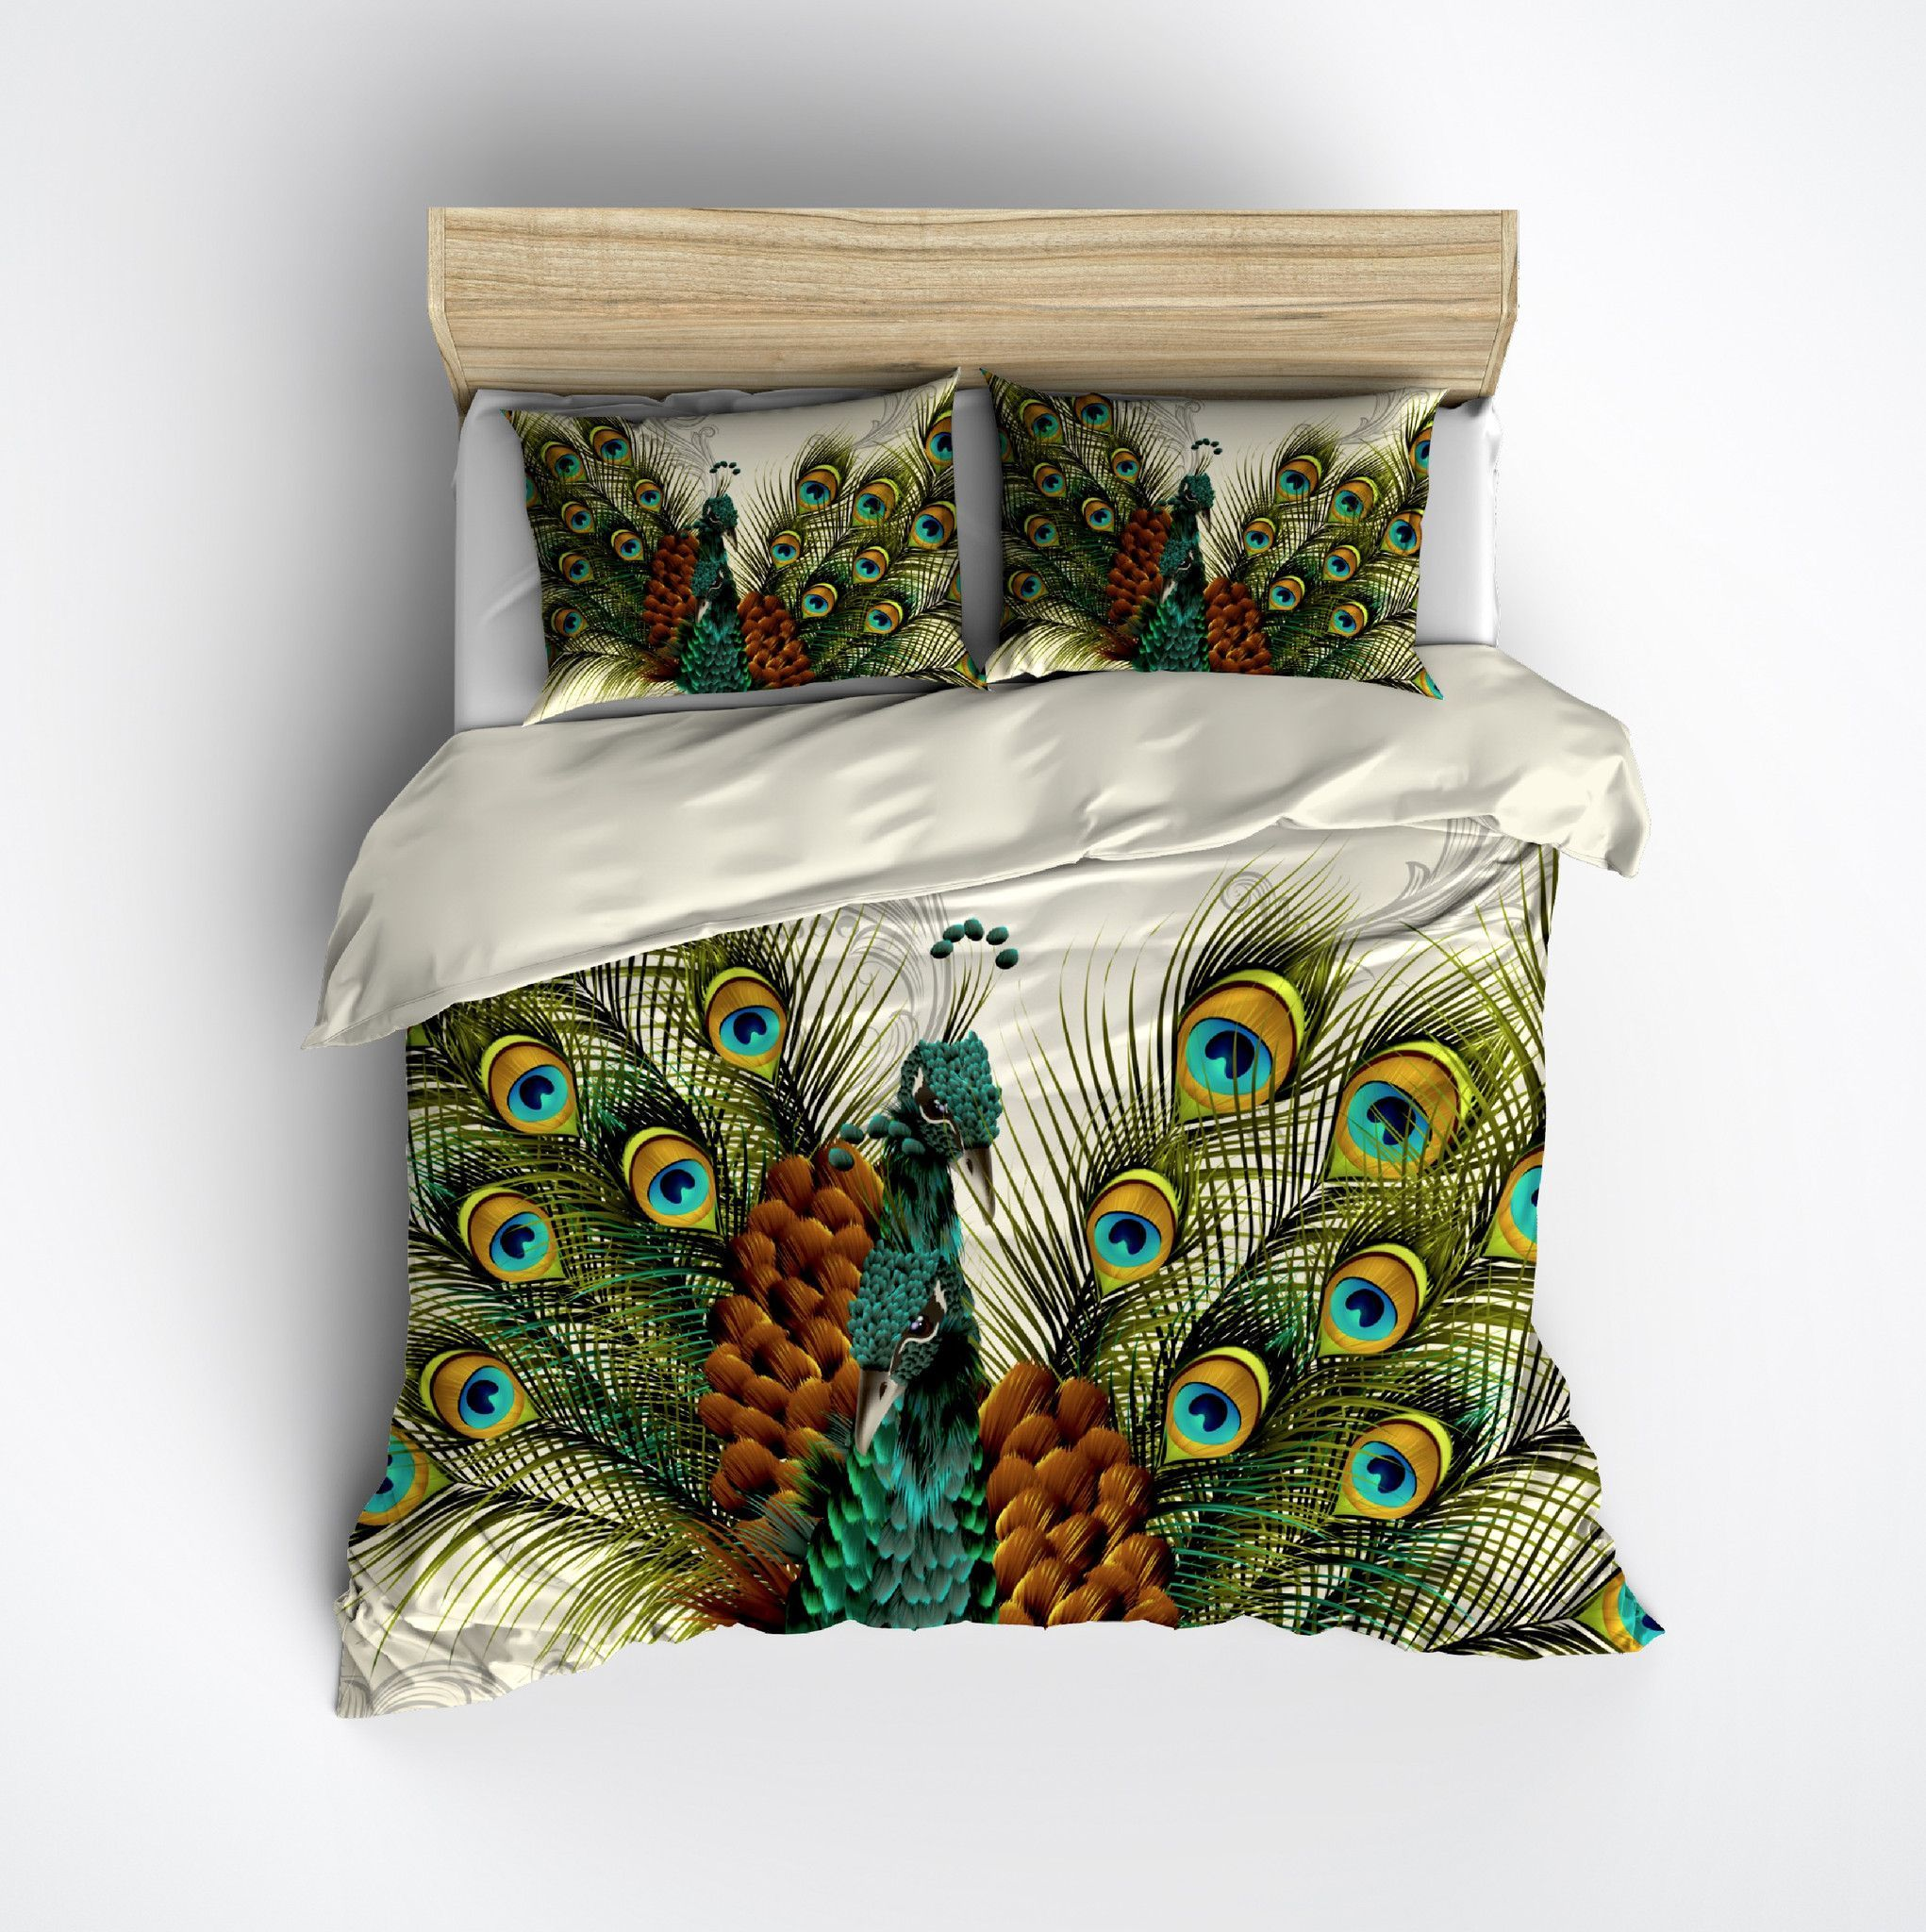 Peacock Bedroom Accessories Twin Peacocks Bedding Beds Pinterest Peacocks Mattress And